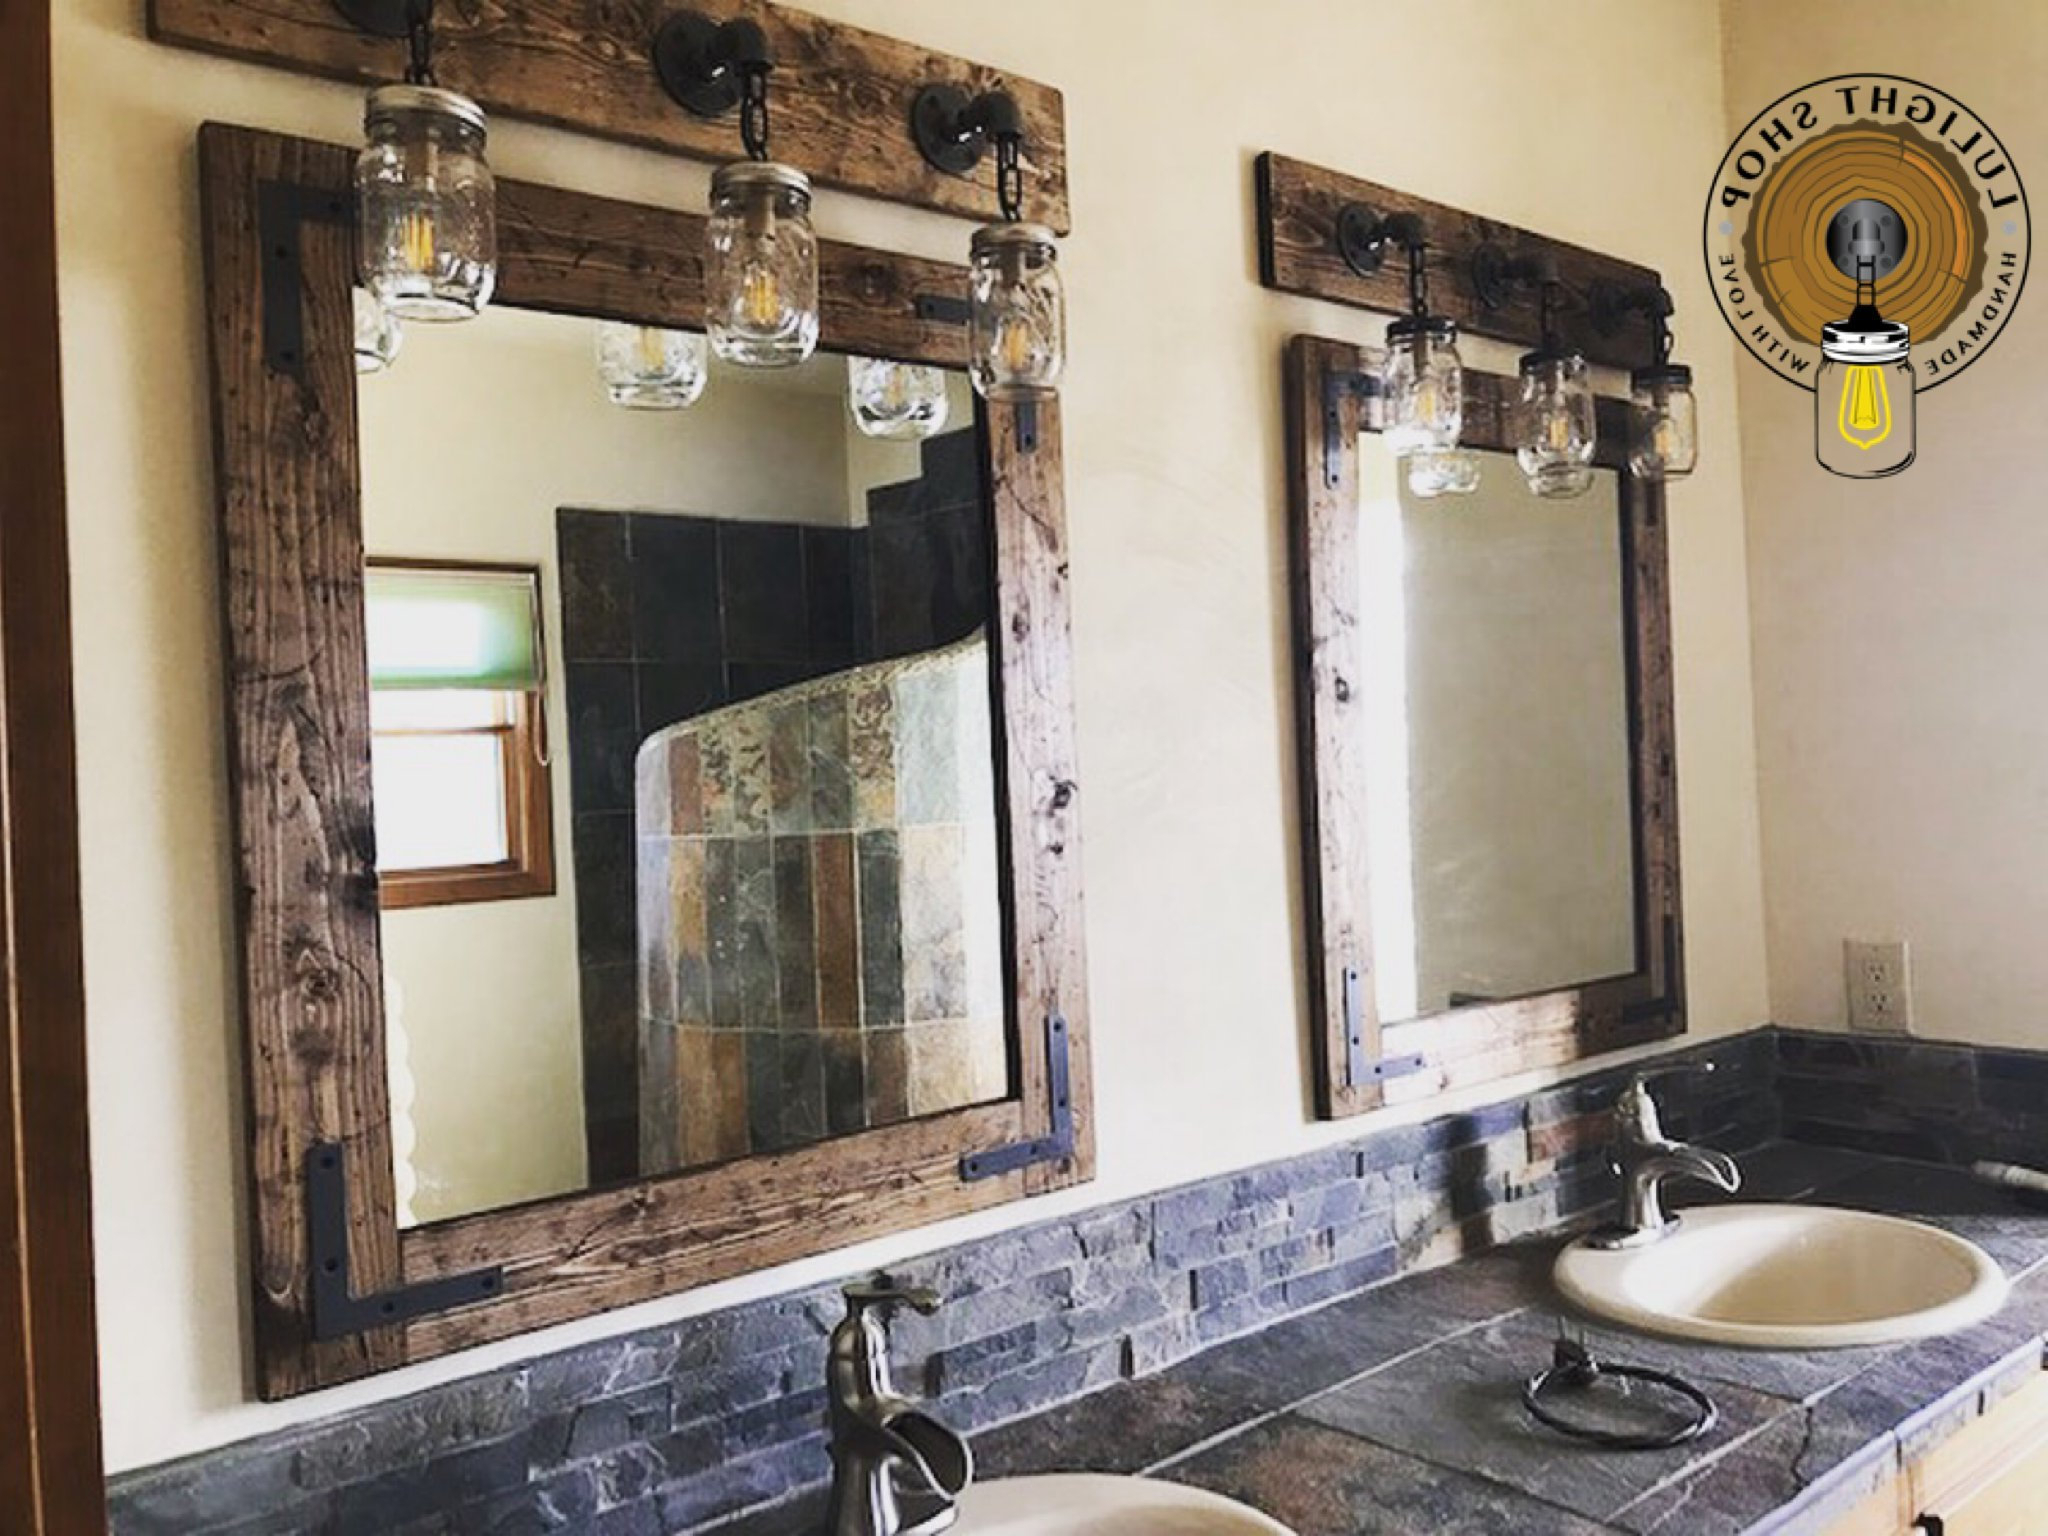 Preferred Rustic Distressed Farmhouse Mirror, Wall Mirror, Vintage Mirror, Rustic Mirror, Wall Hanging Vanity Mirror, Rustic Decor, Standing Mirrors Throughout Standing Wall Mirrors (View 17 of 20)